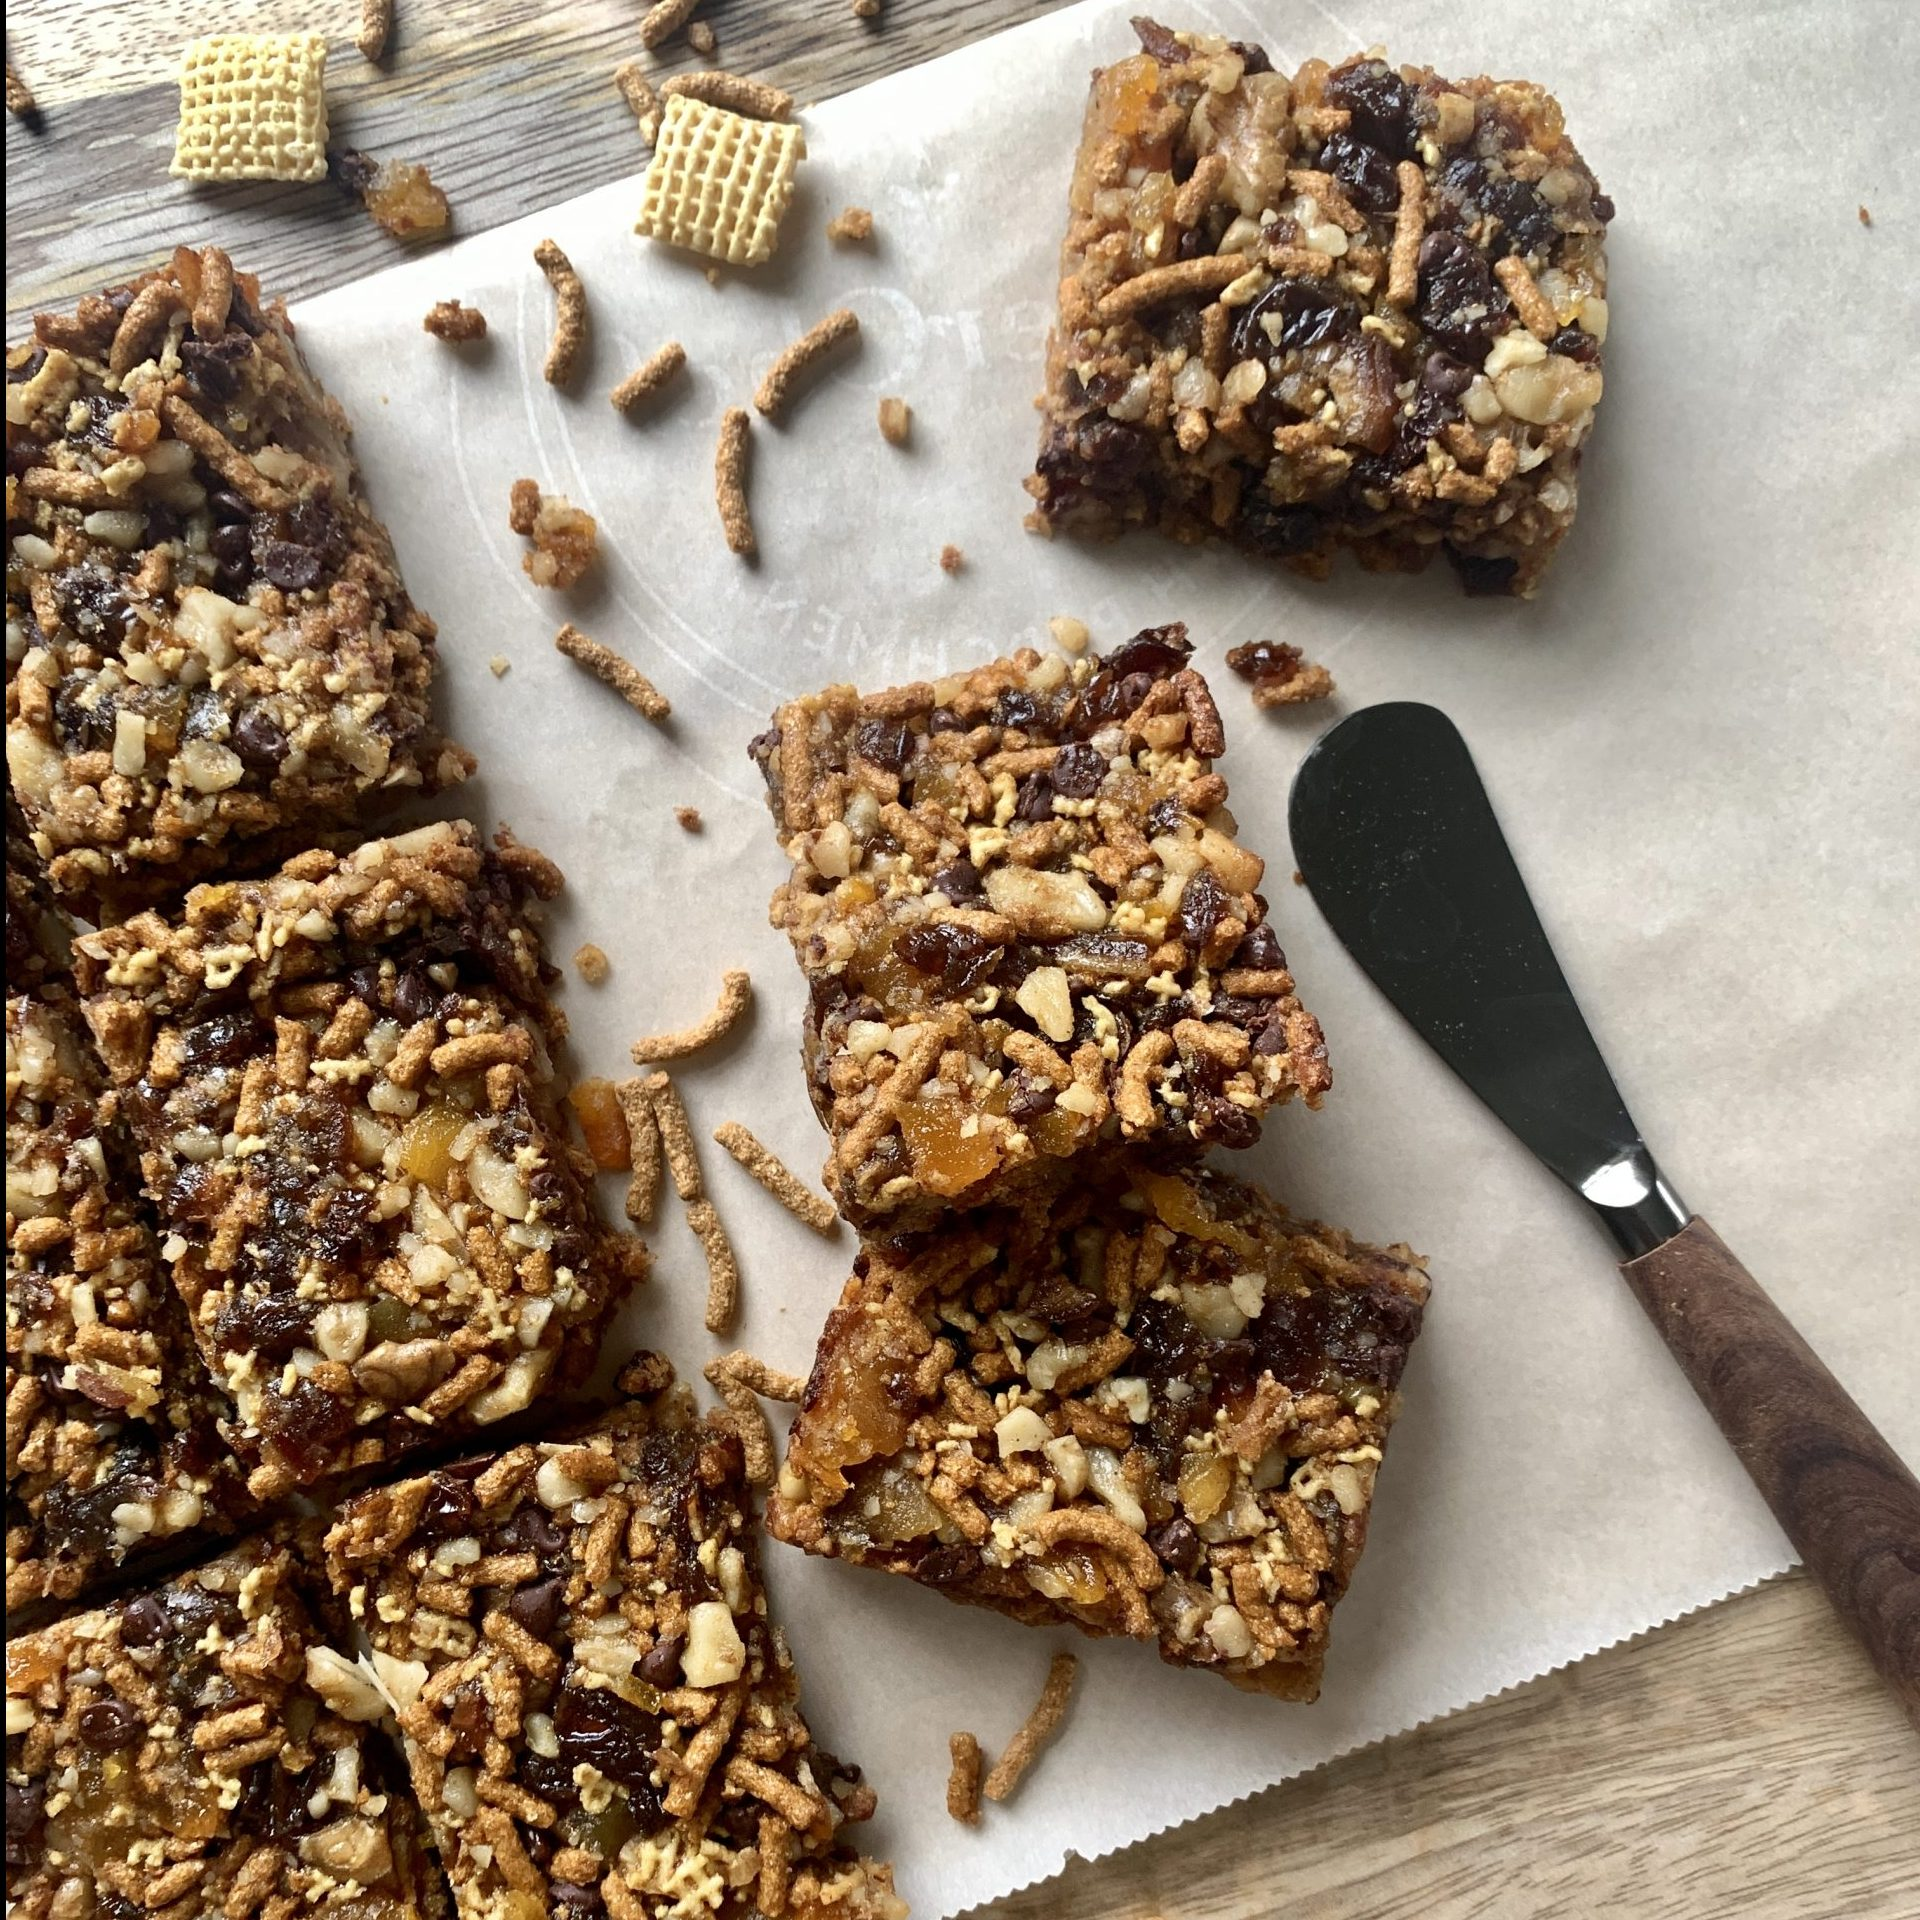 Homemade Fiber One Cereal Bars With Walnuts And Dried Fruit